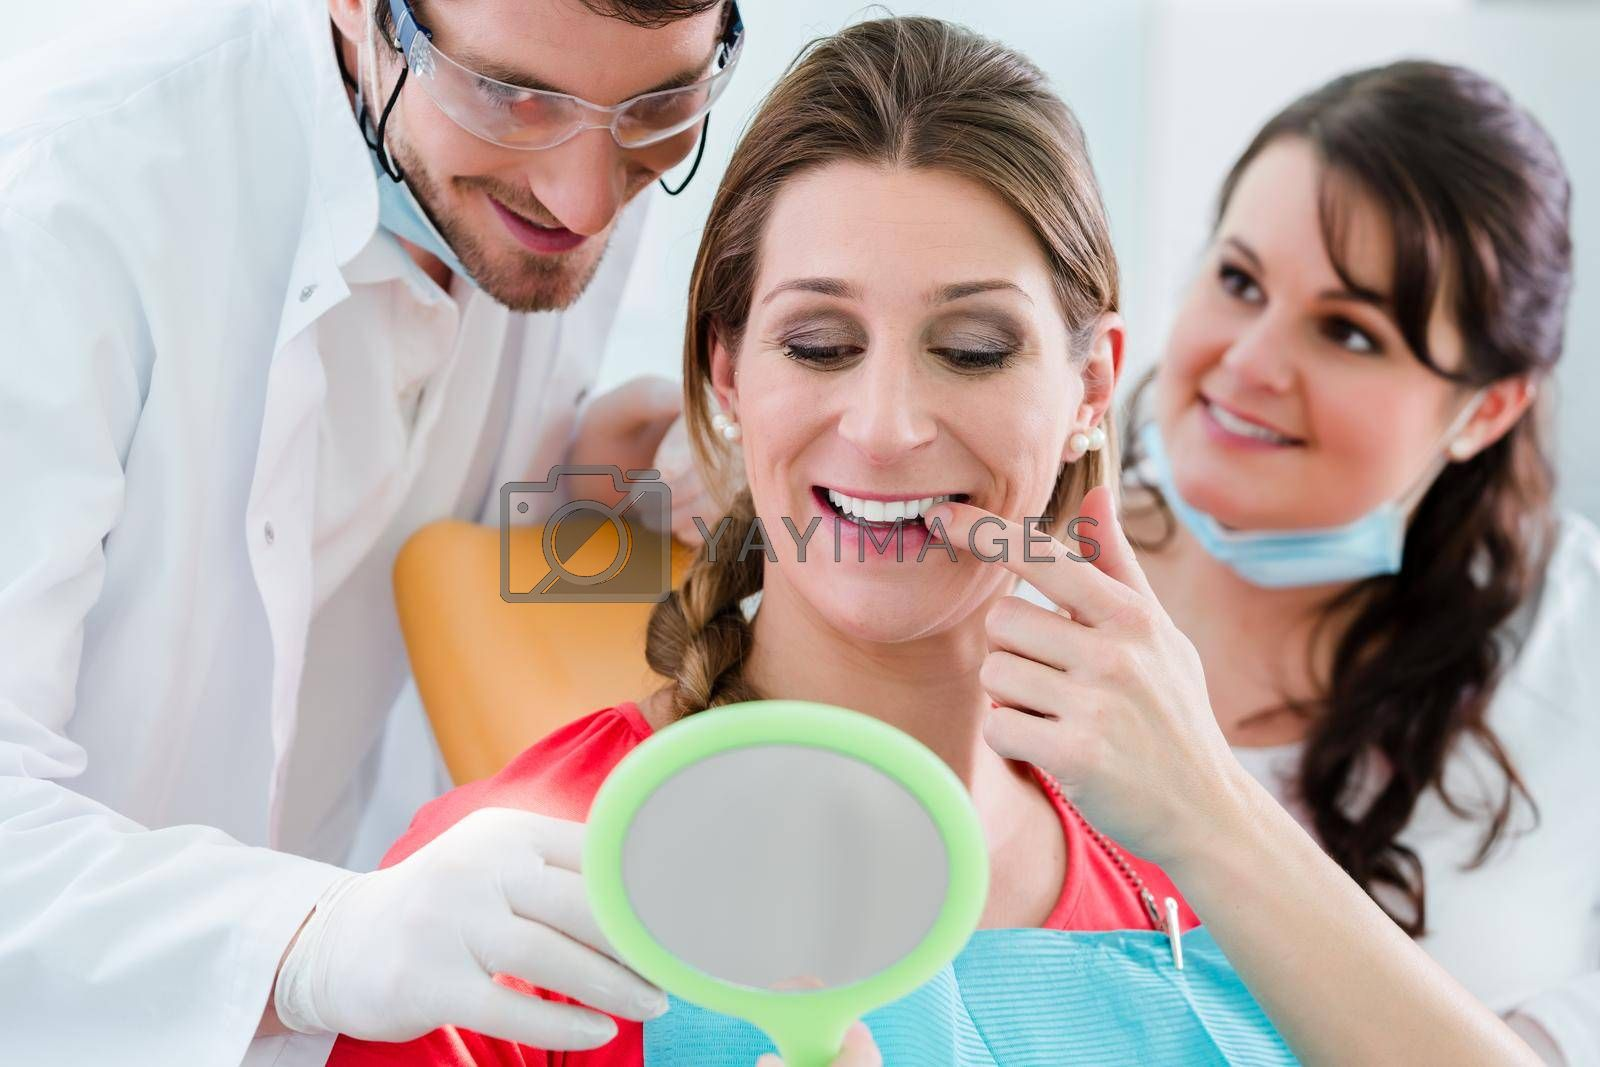 Royalty free image of Woman after dental bleaching at dentist by Kzenon